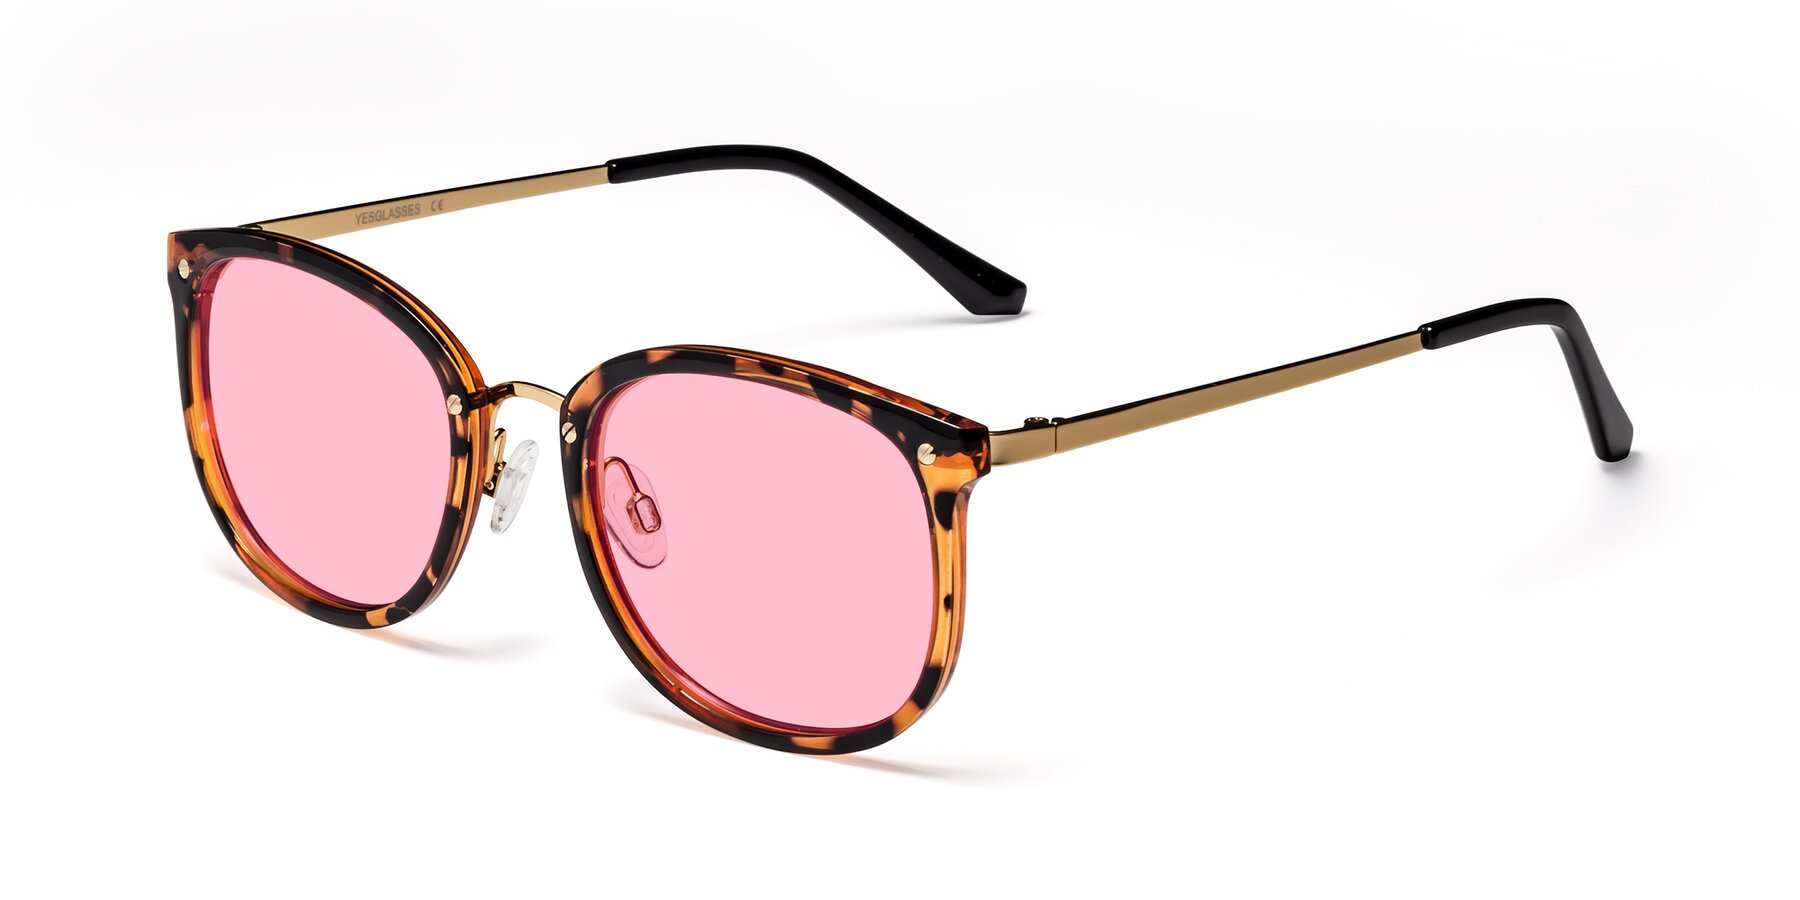 Angle of Timeless in Tortoise-Golden with Medium Pink Tinted Lenses